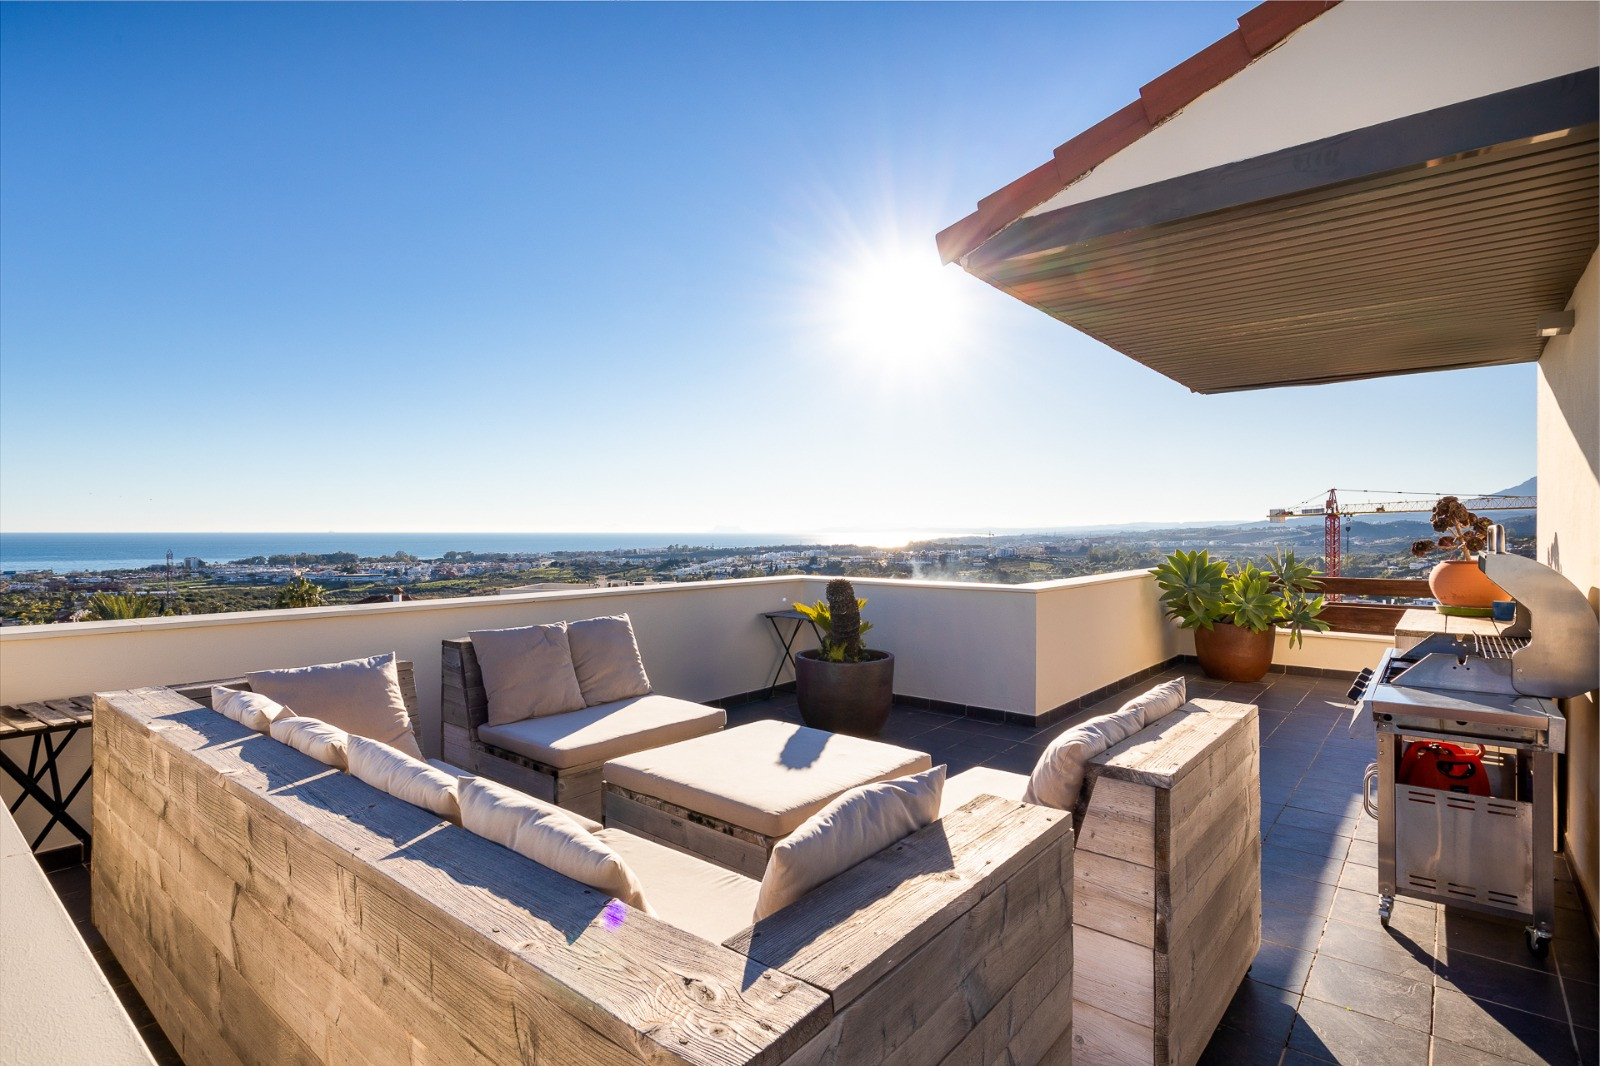 Penthouse for rent in <i>Los Flamingos, </i>Benahavis